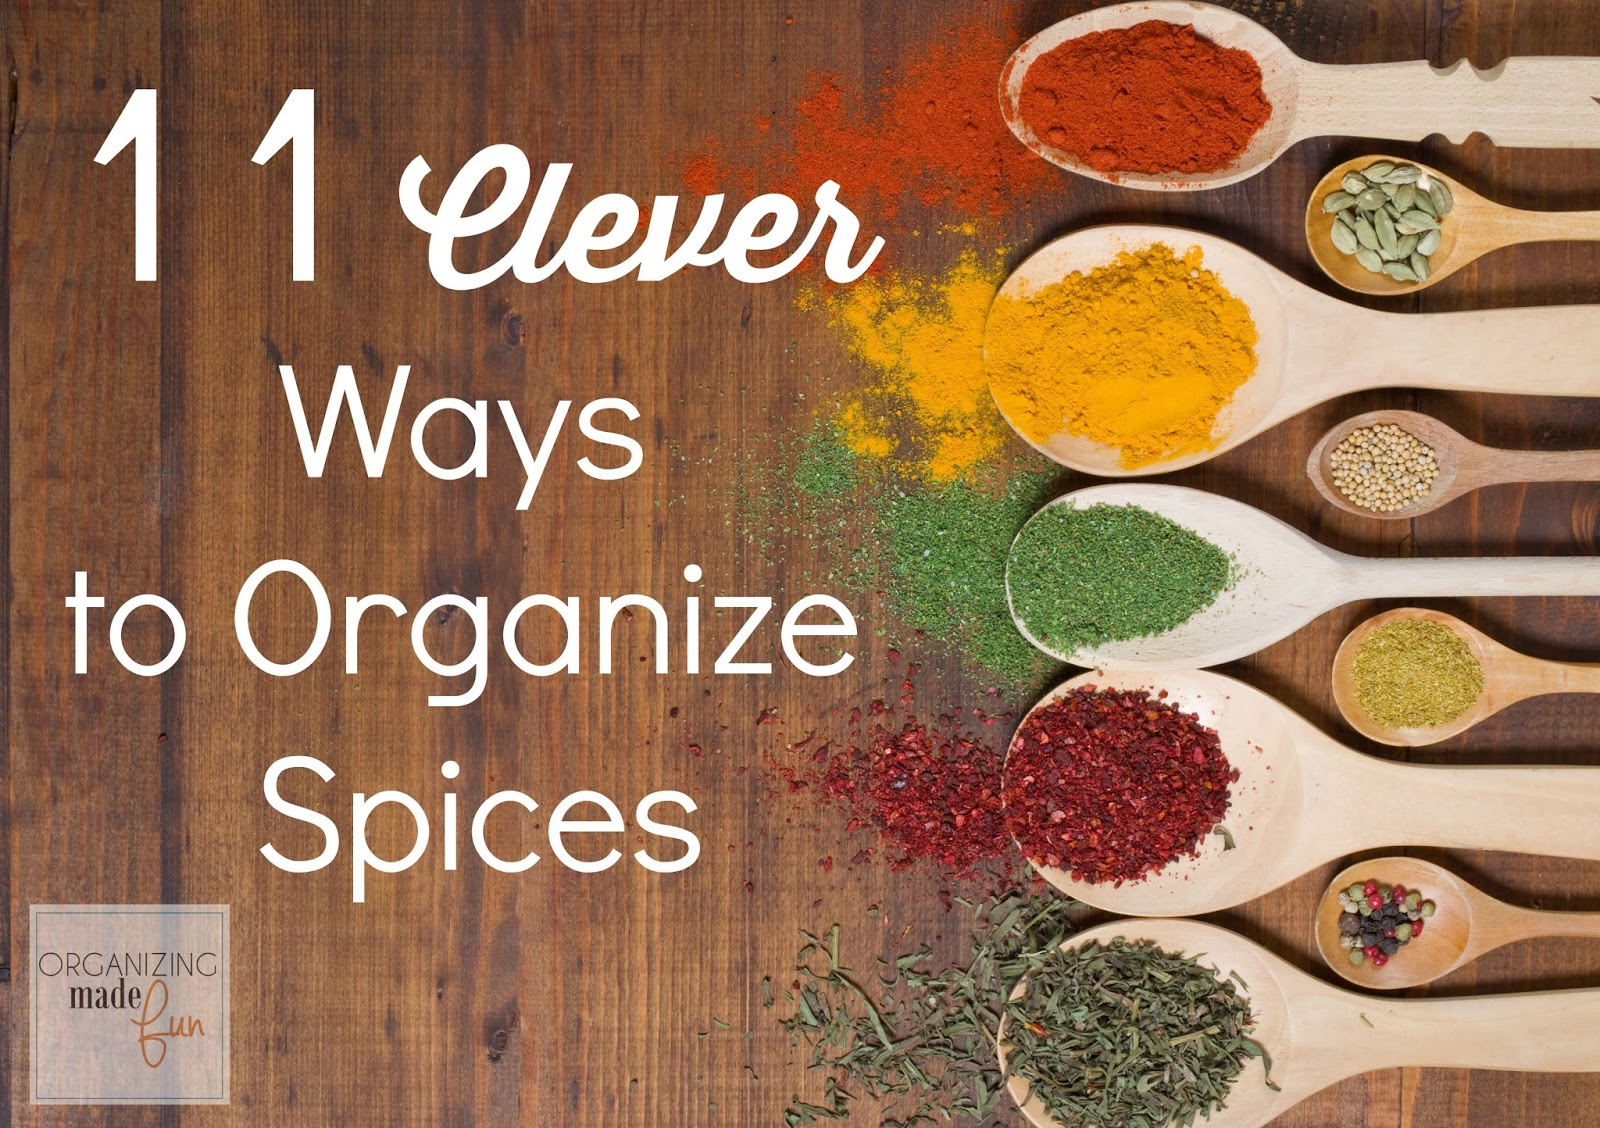 11 Clever Ways To Organize Spices Organizing Made Fun 11 Clever Ways To Organize Spices